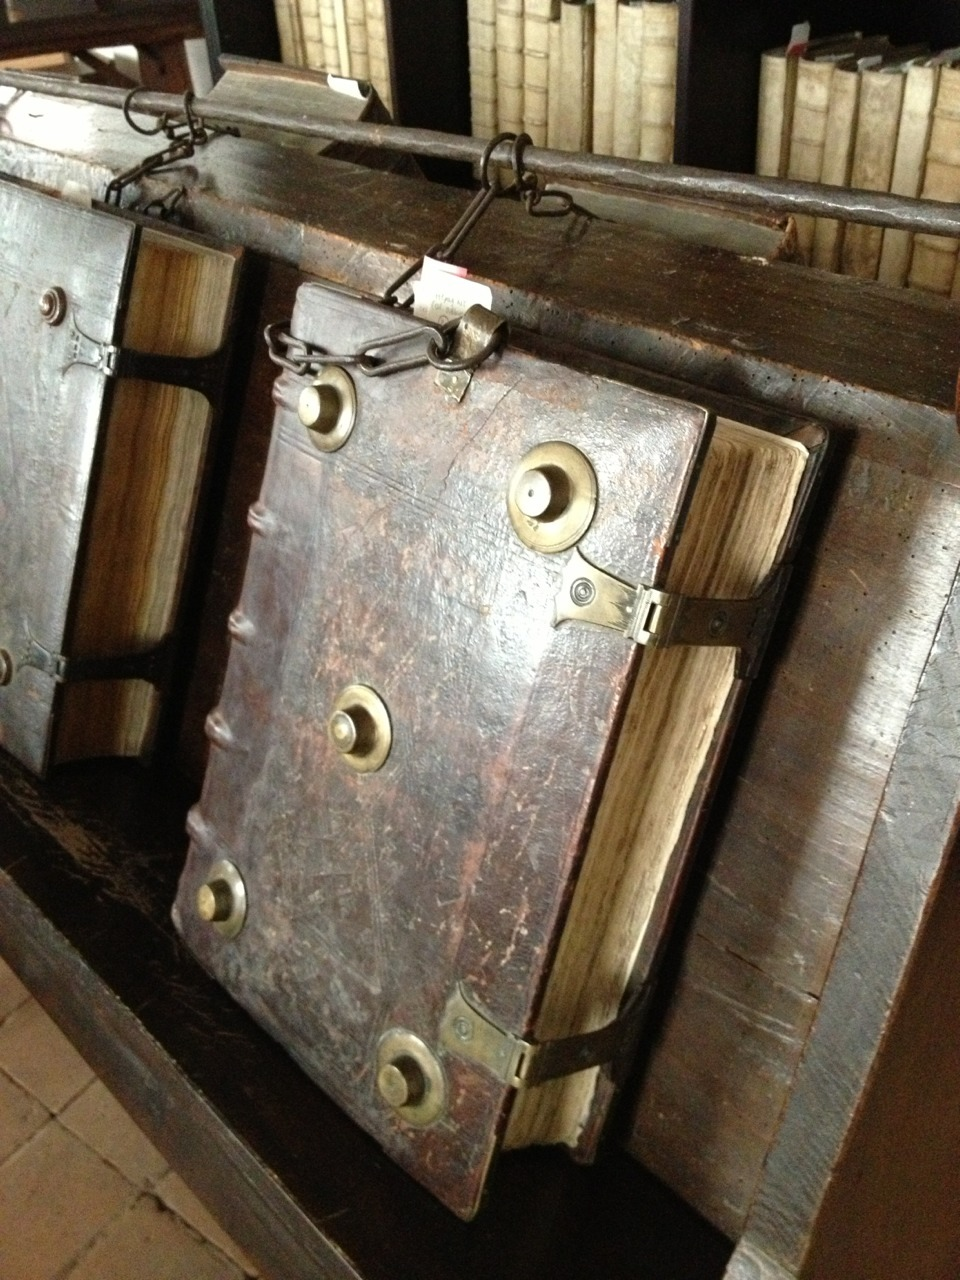 erikkwakkel:  The Chained Library of Zutphen I took these pictures during a visit to the 16th-century chained library of Zutphen, in the east of the Netherlands. It is one of three such libraries still in existence in Europe. Nothing much has changed here for 550 years. Here is more information (in English) on the chained library in Zutphen. Also check out this recent blog on medieval chained libraries (and Zutphen's), written by one of the researchers in my project.